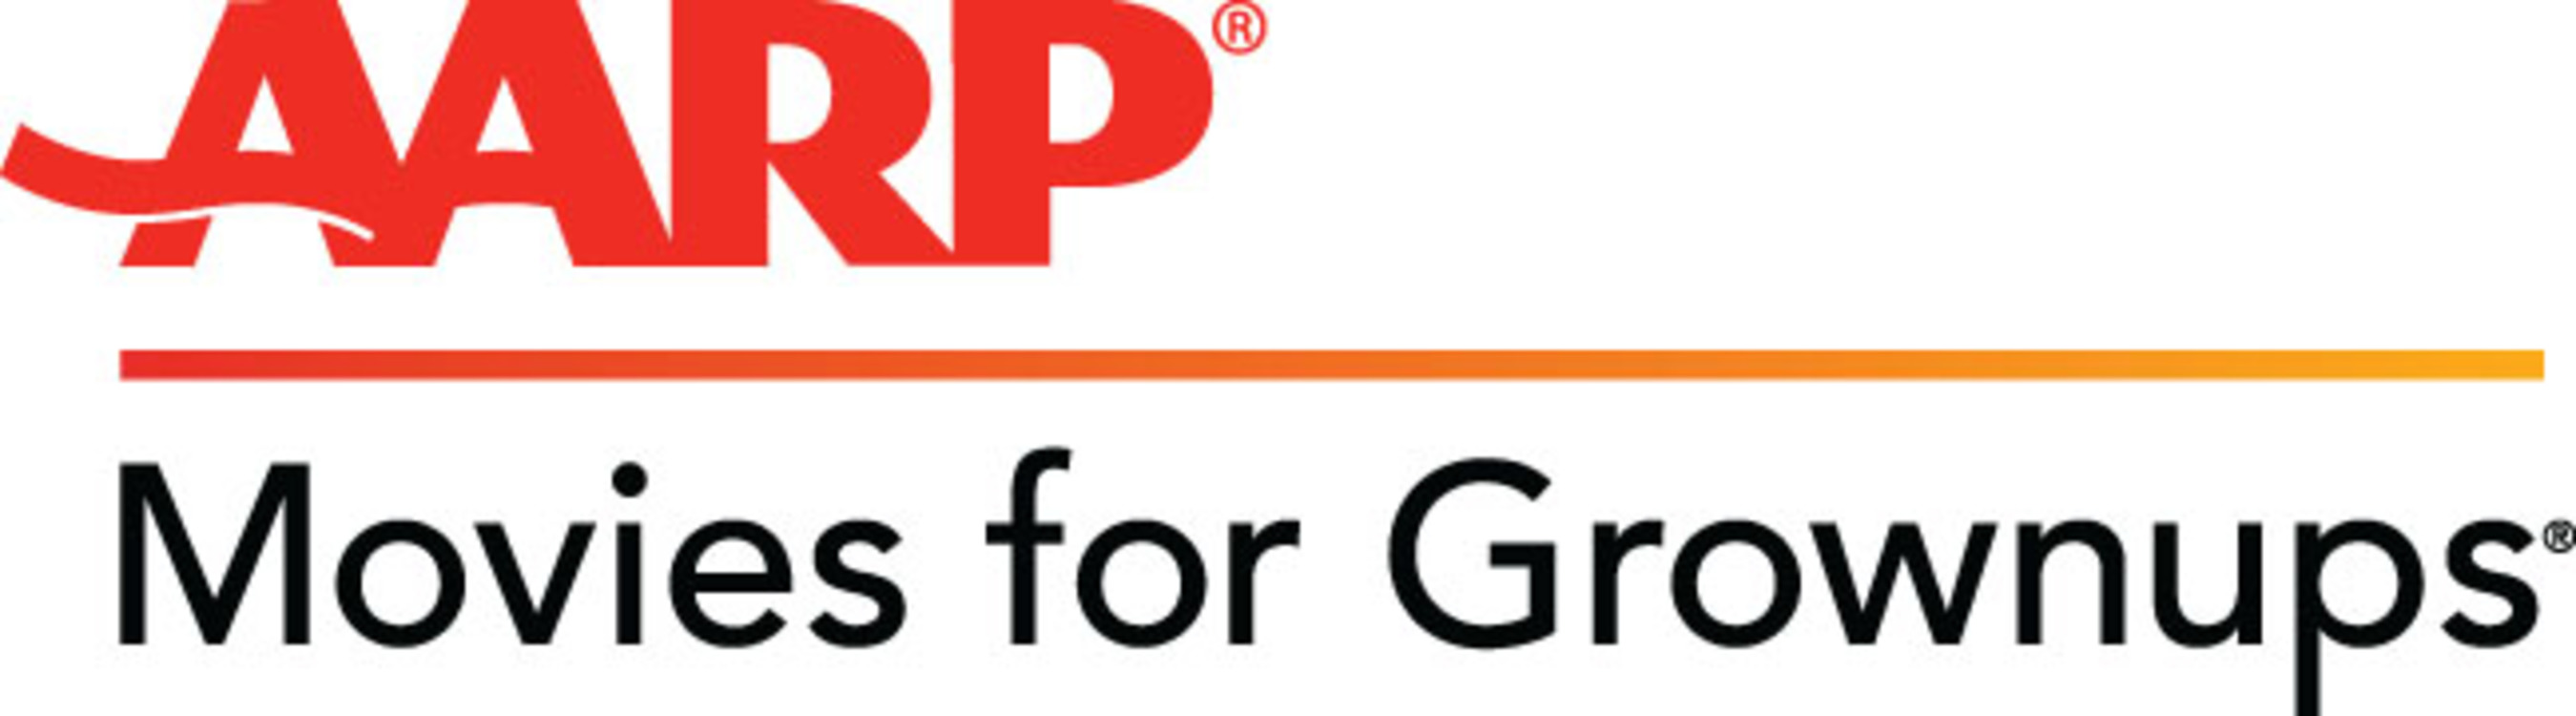 AARP The Magazine Announces Nominees for the 15th Annual Movies for Grownups' Awards